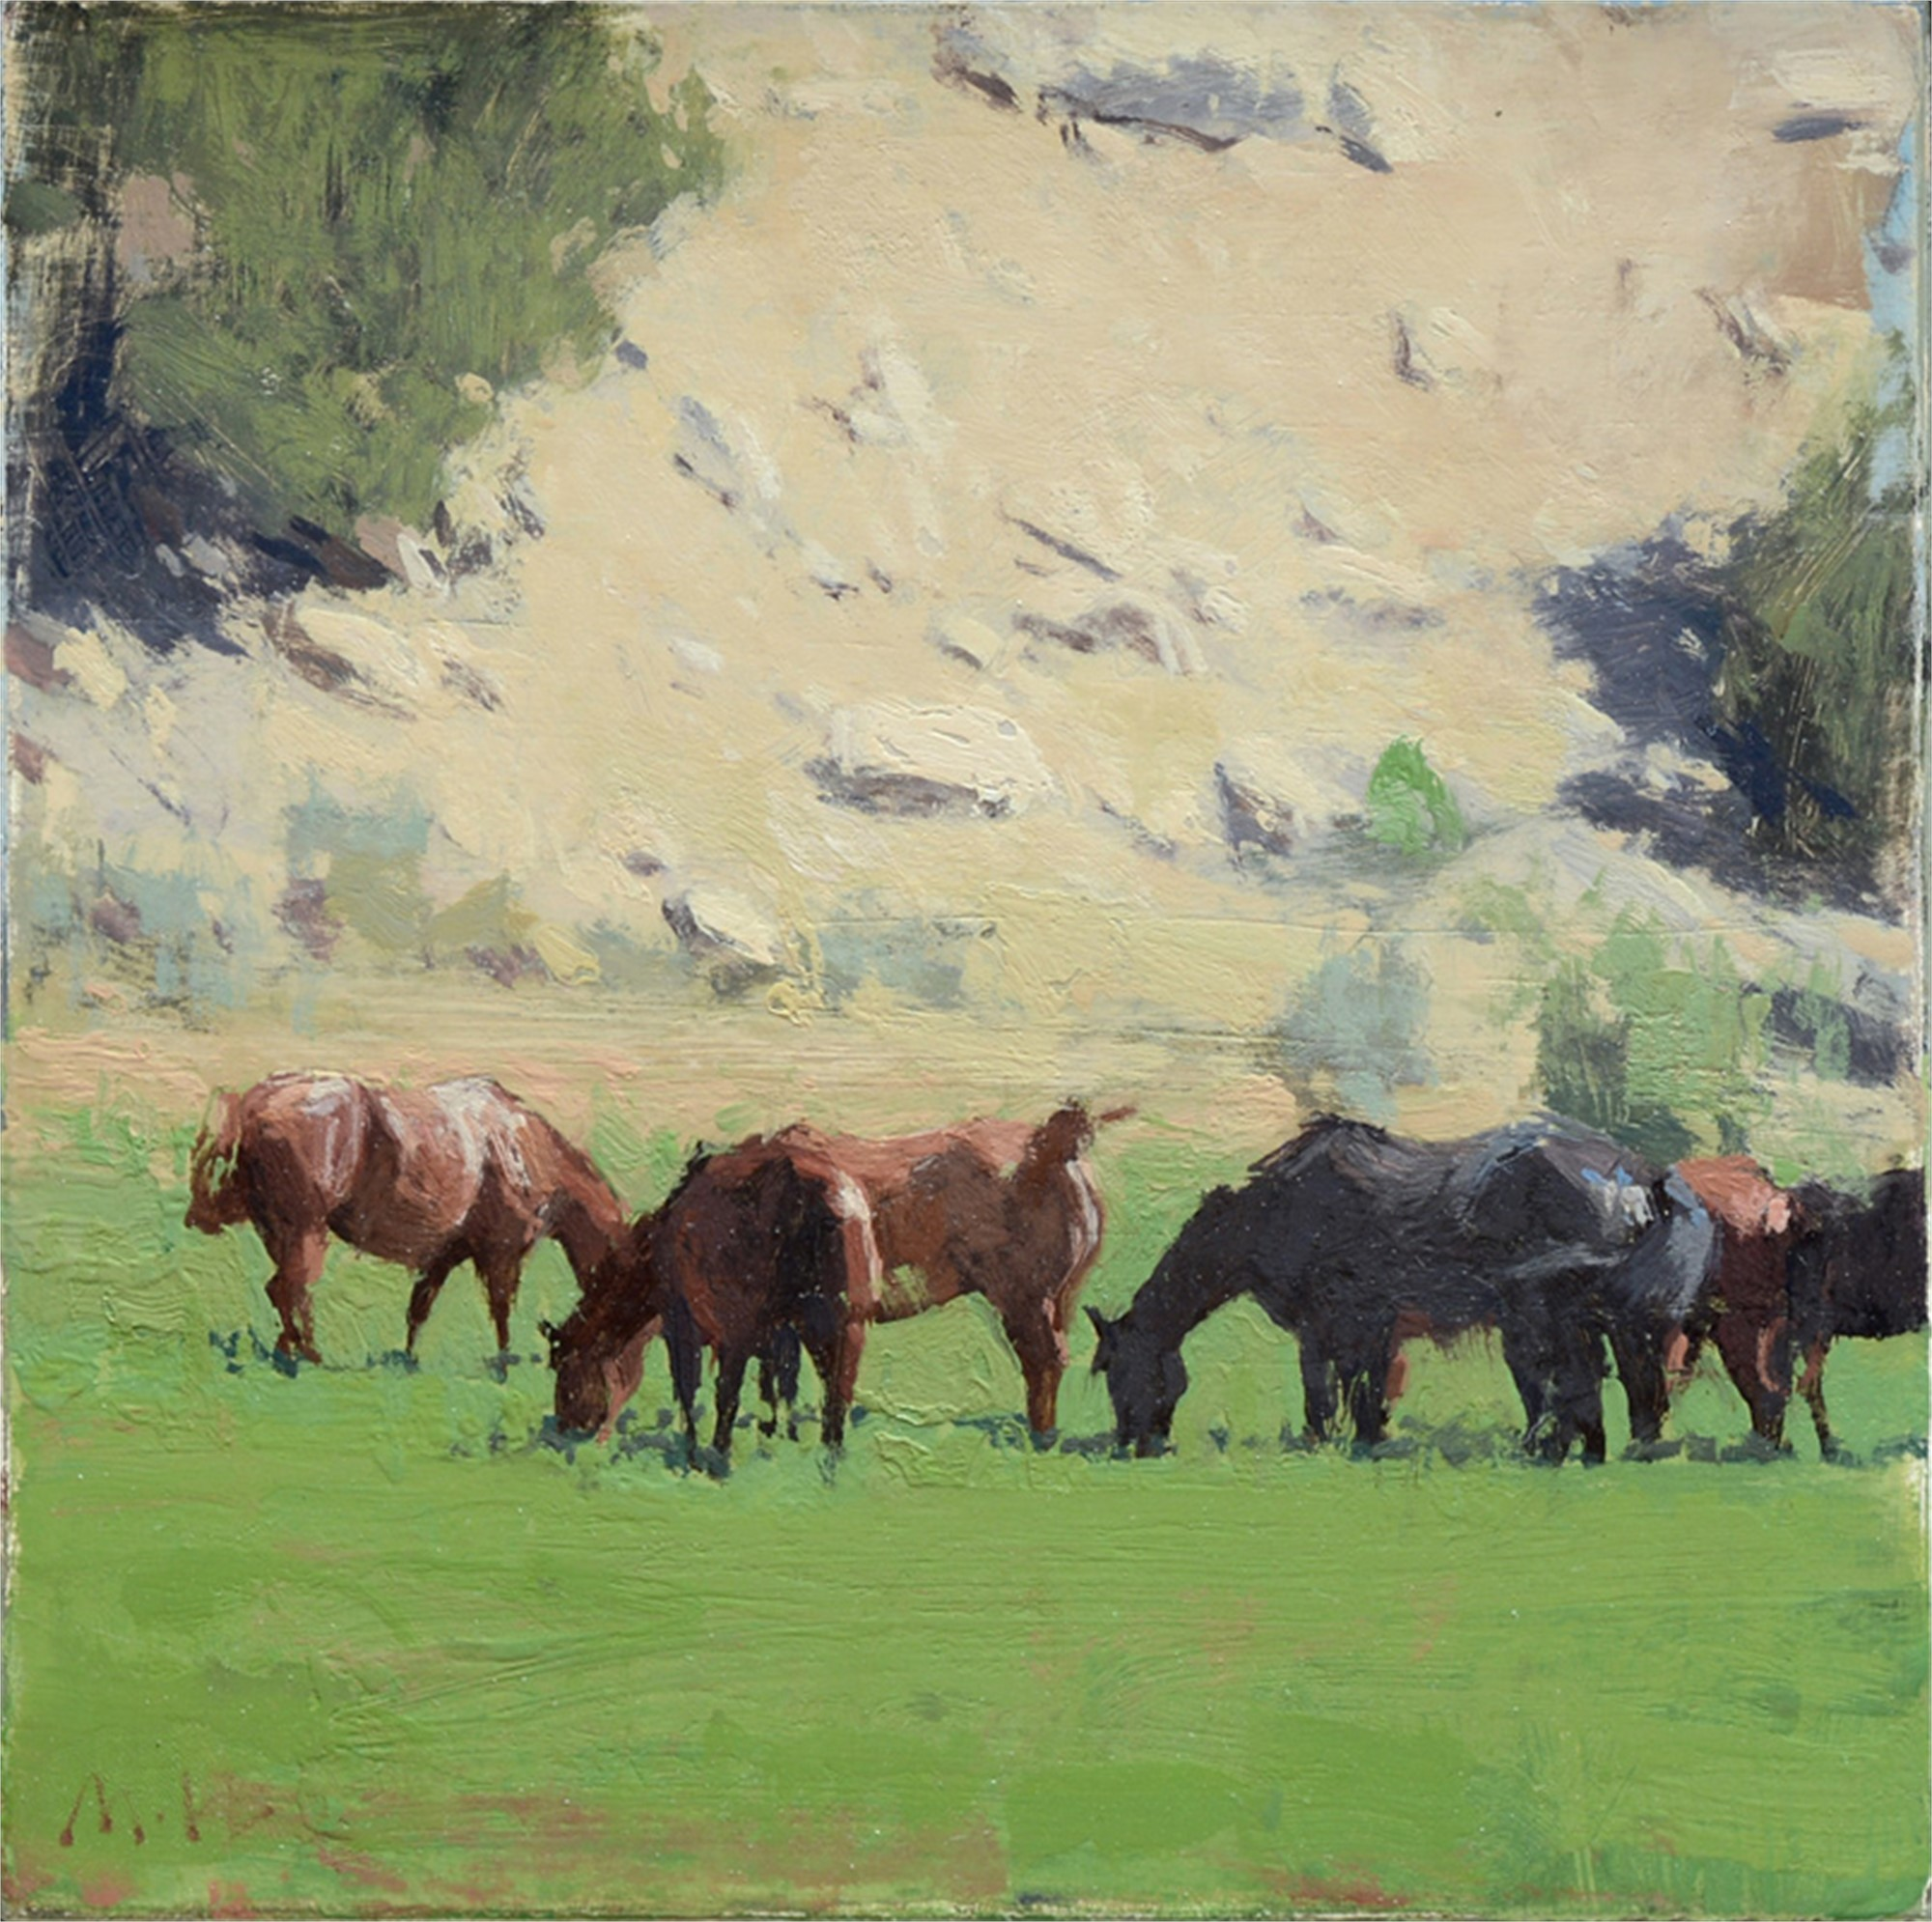 Canyon Horses I by Michael Workman